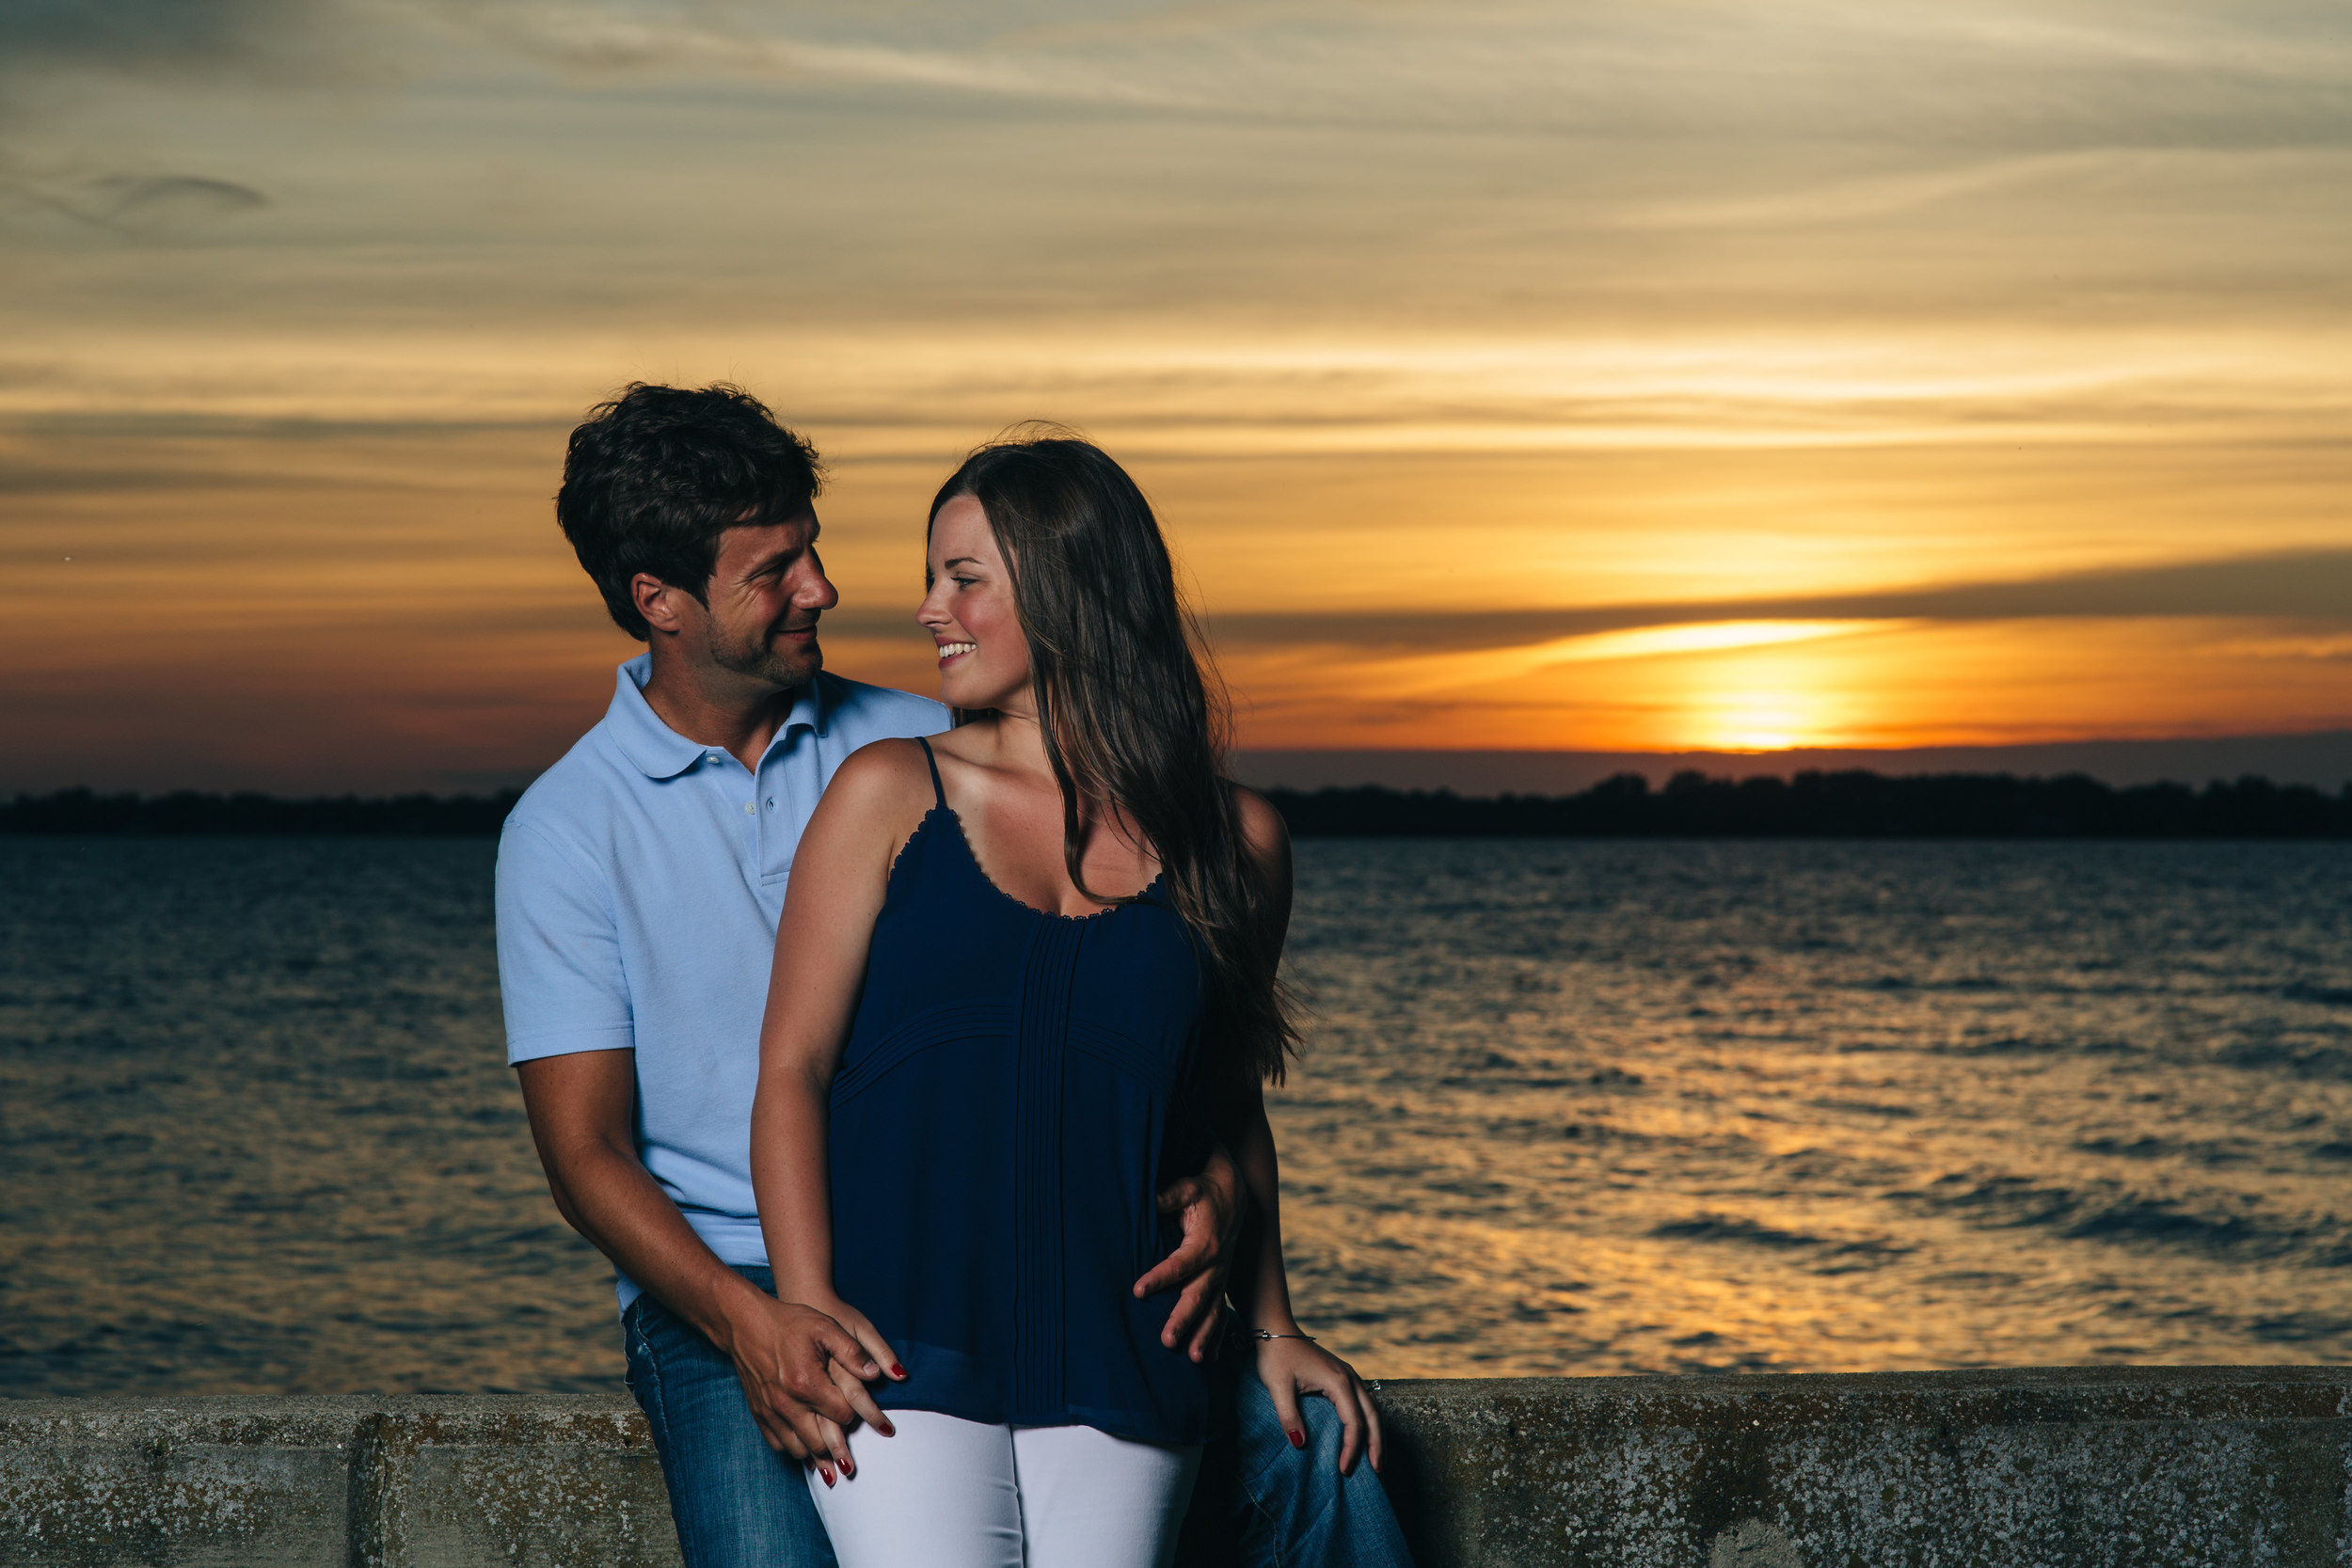 Sunset engagement session at Brest Bay in Michigan.